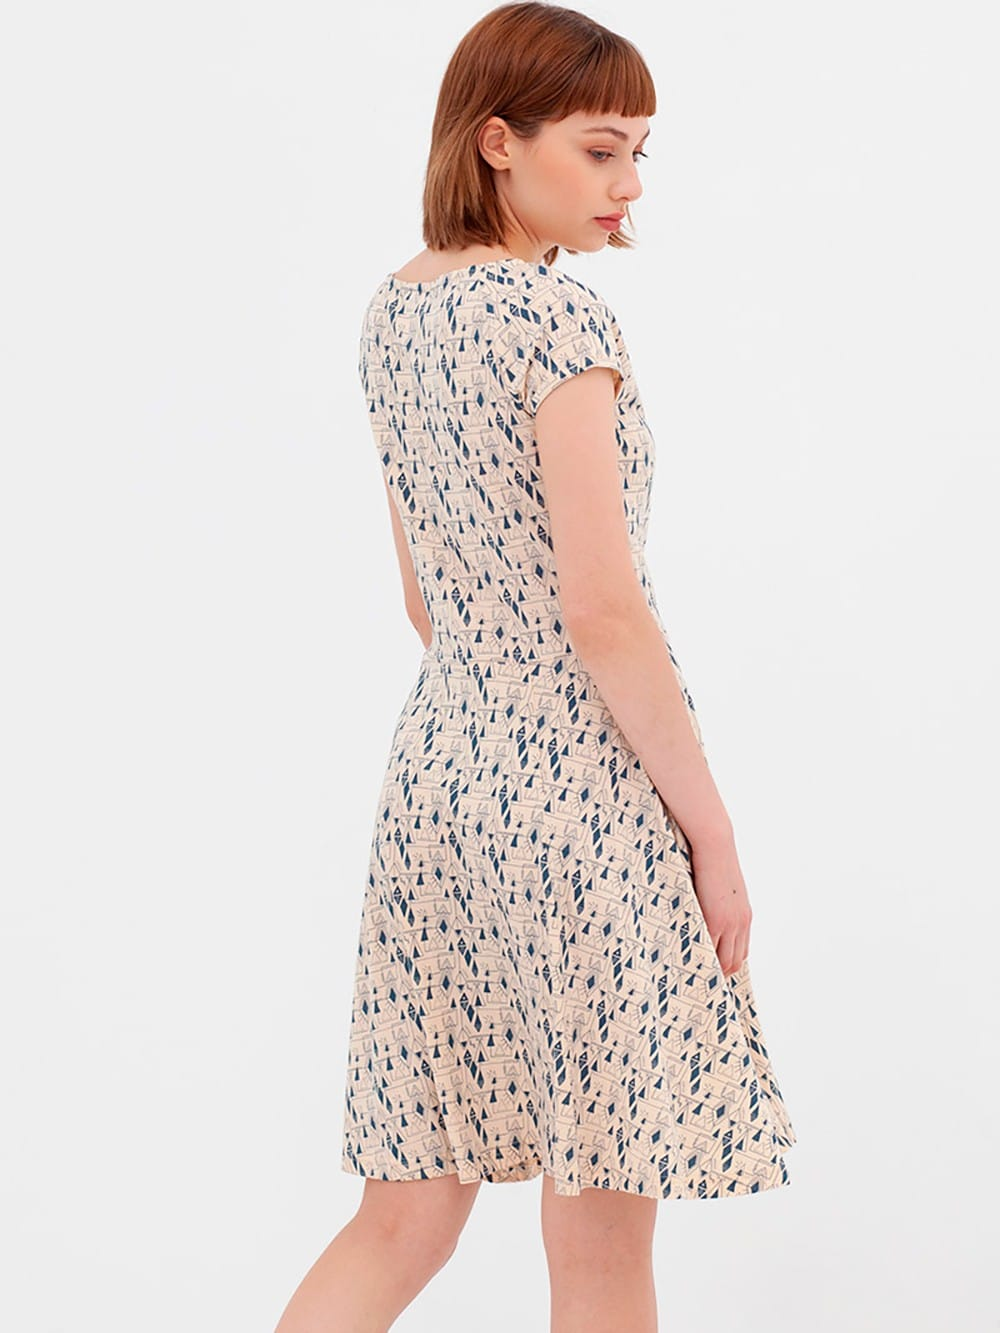 Organic cotton retro dress nico-Ad le